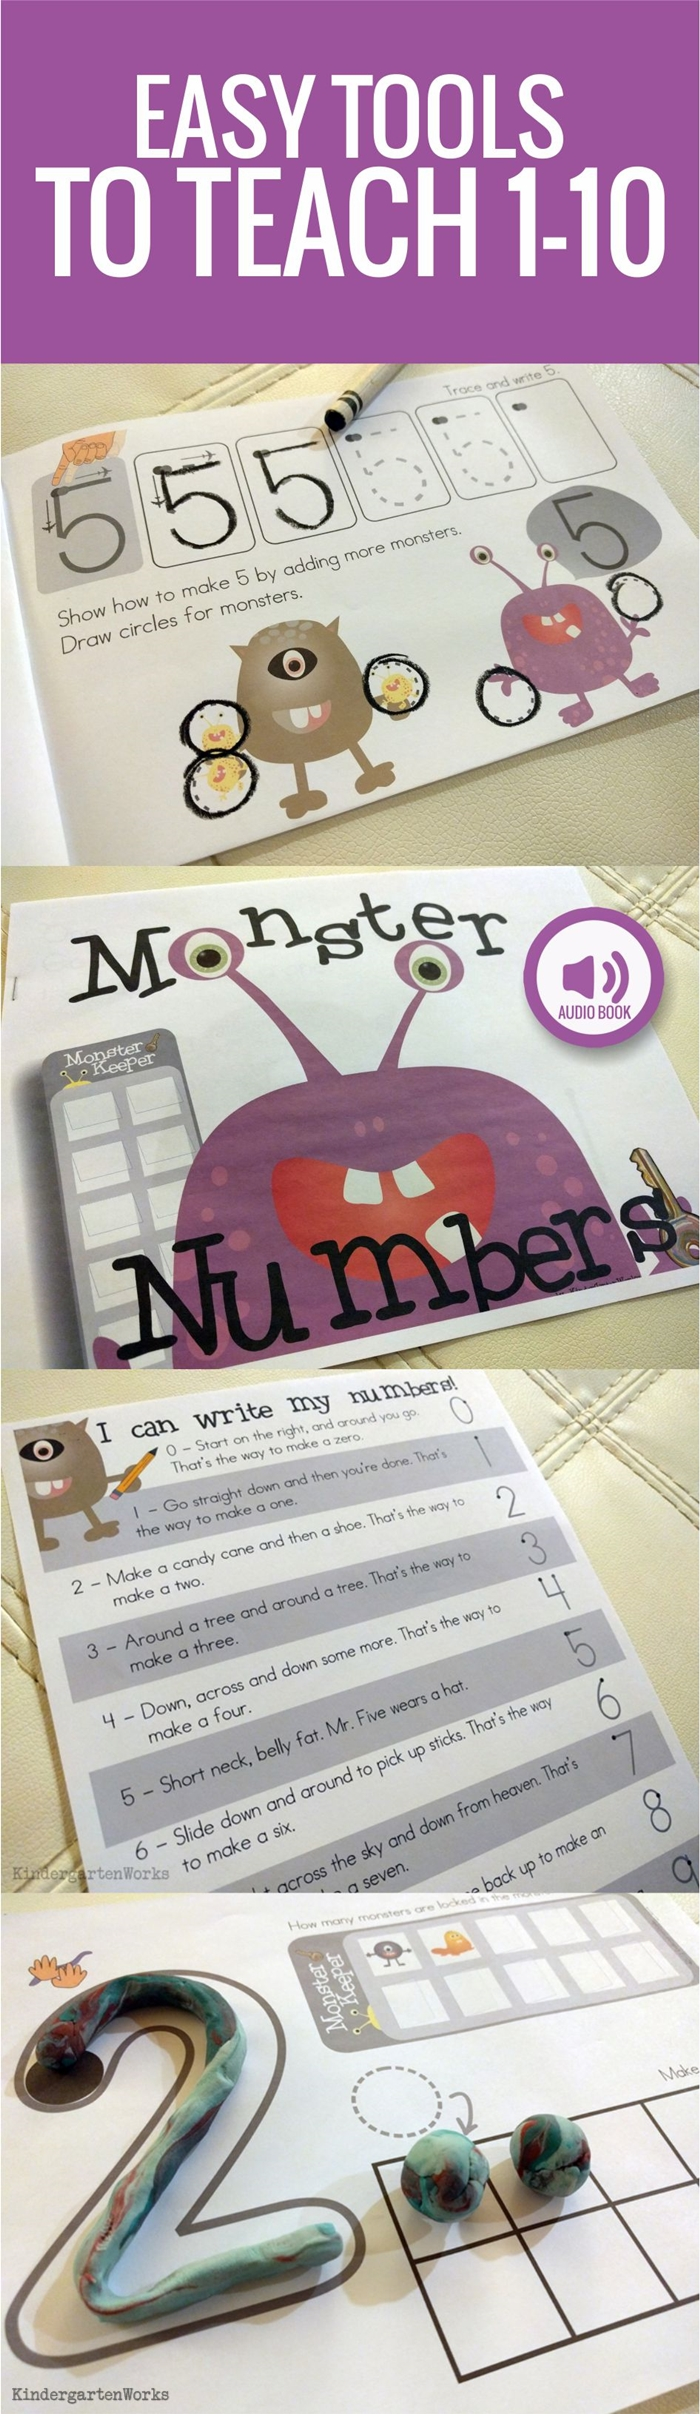 How to teach numbers in kindergarten - I love this - it totally works